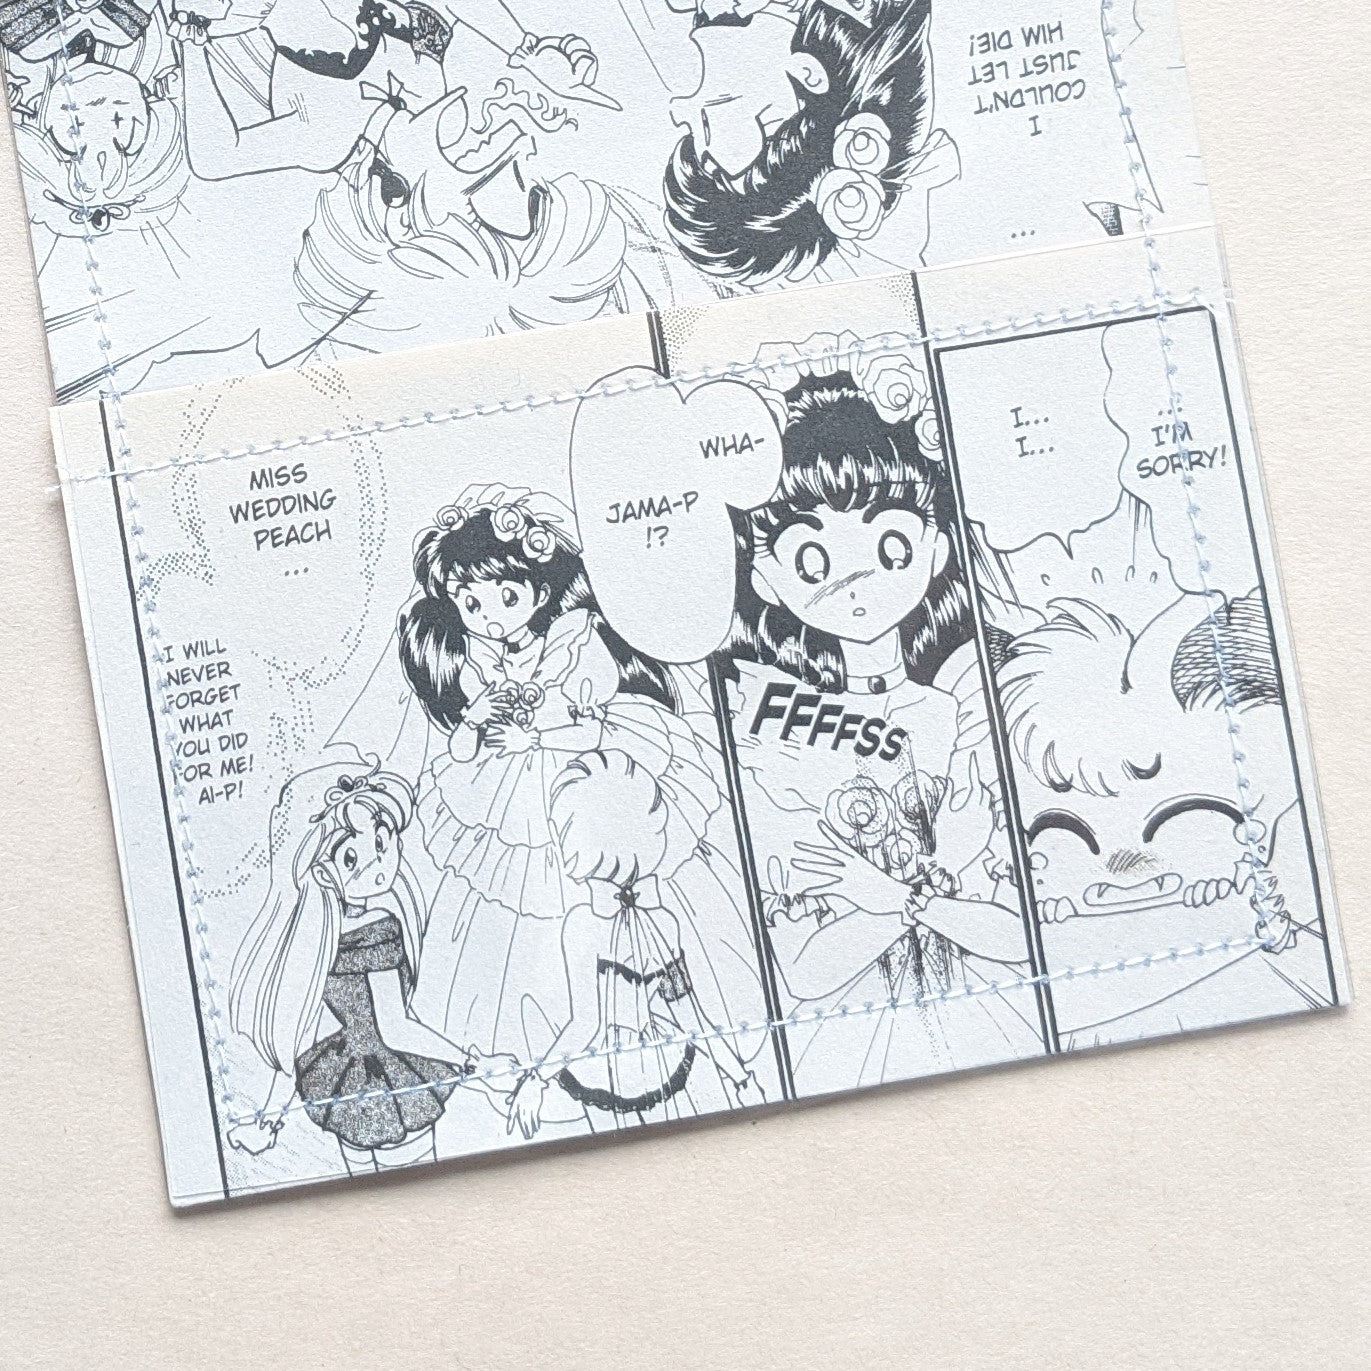 Wedding Peach - Upcycled Comic Book Vinyl Wallet